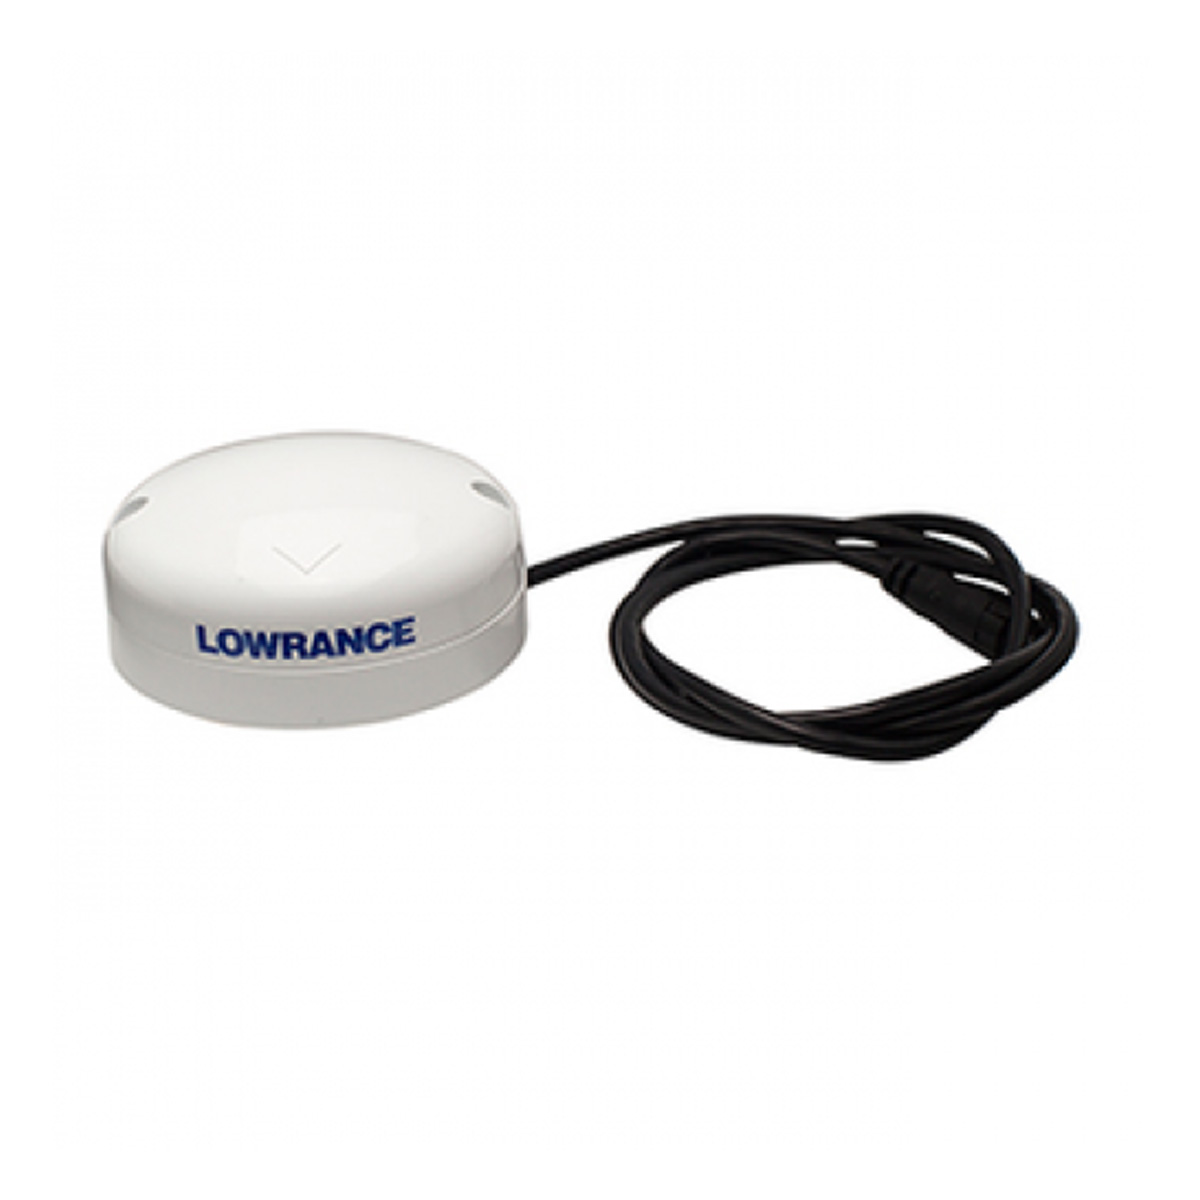 LOWRANCE Parts Point-1 ヘディングセンサー内蔵GPSアンテナ